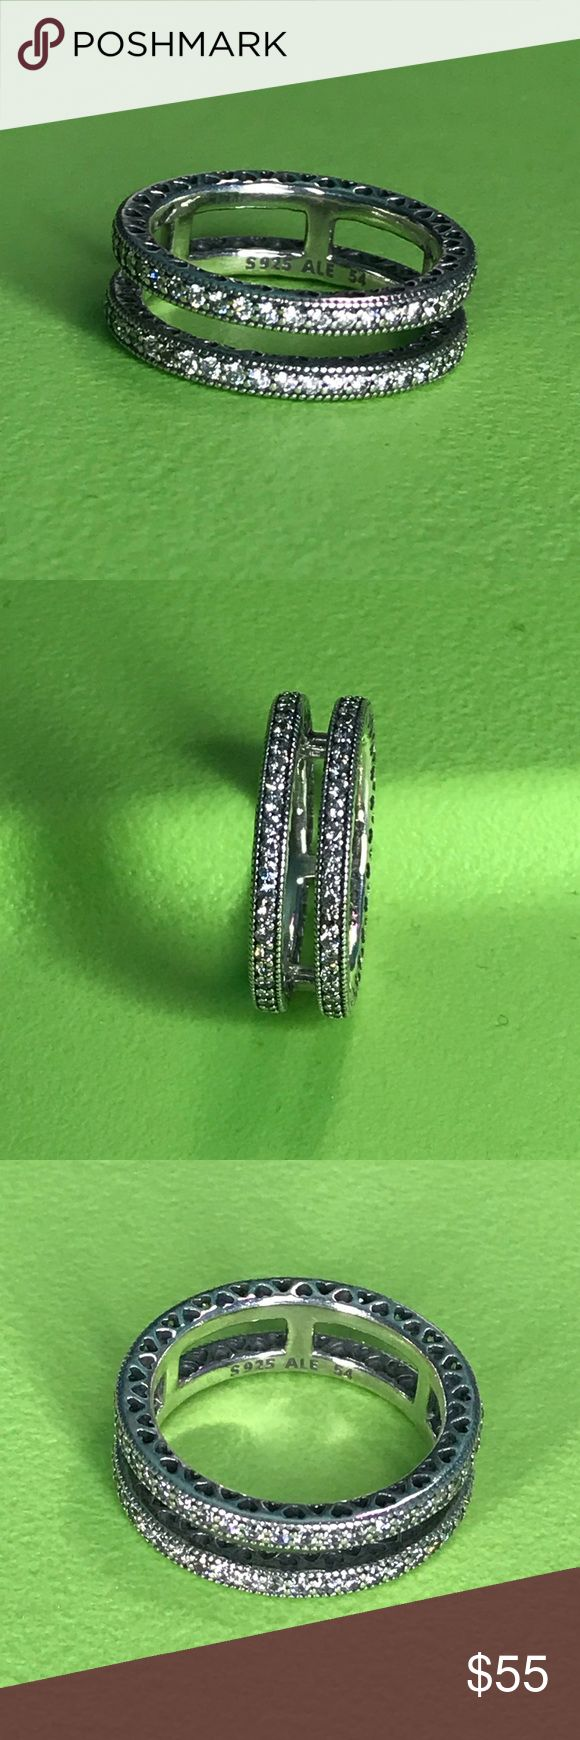 Double Hearts of Pandora Ring PRICE IS FIRM!! Never worn. Pouch included. Pandora Jewelry Rings